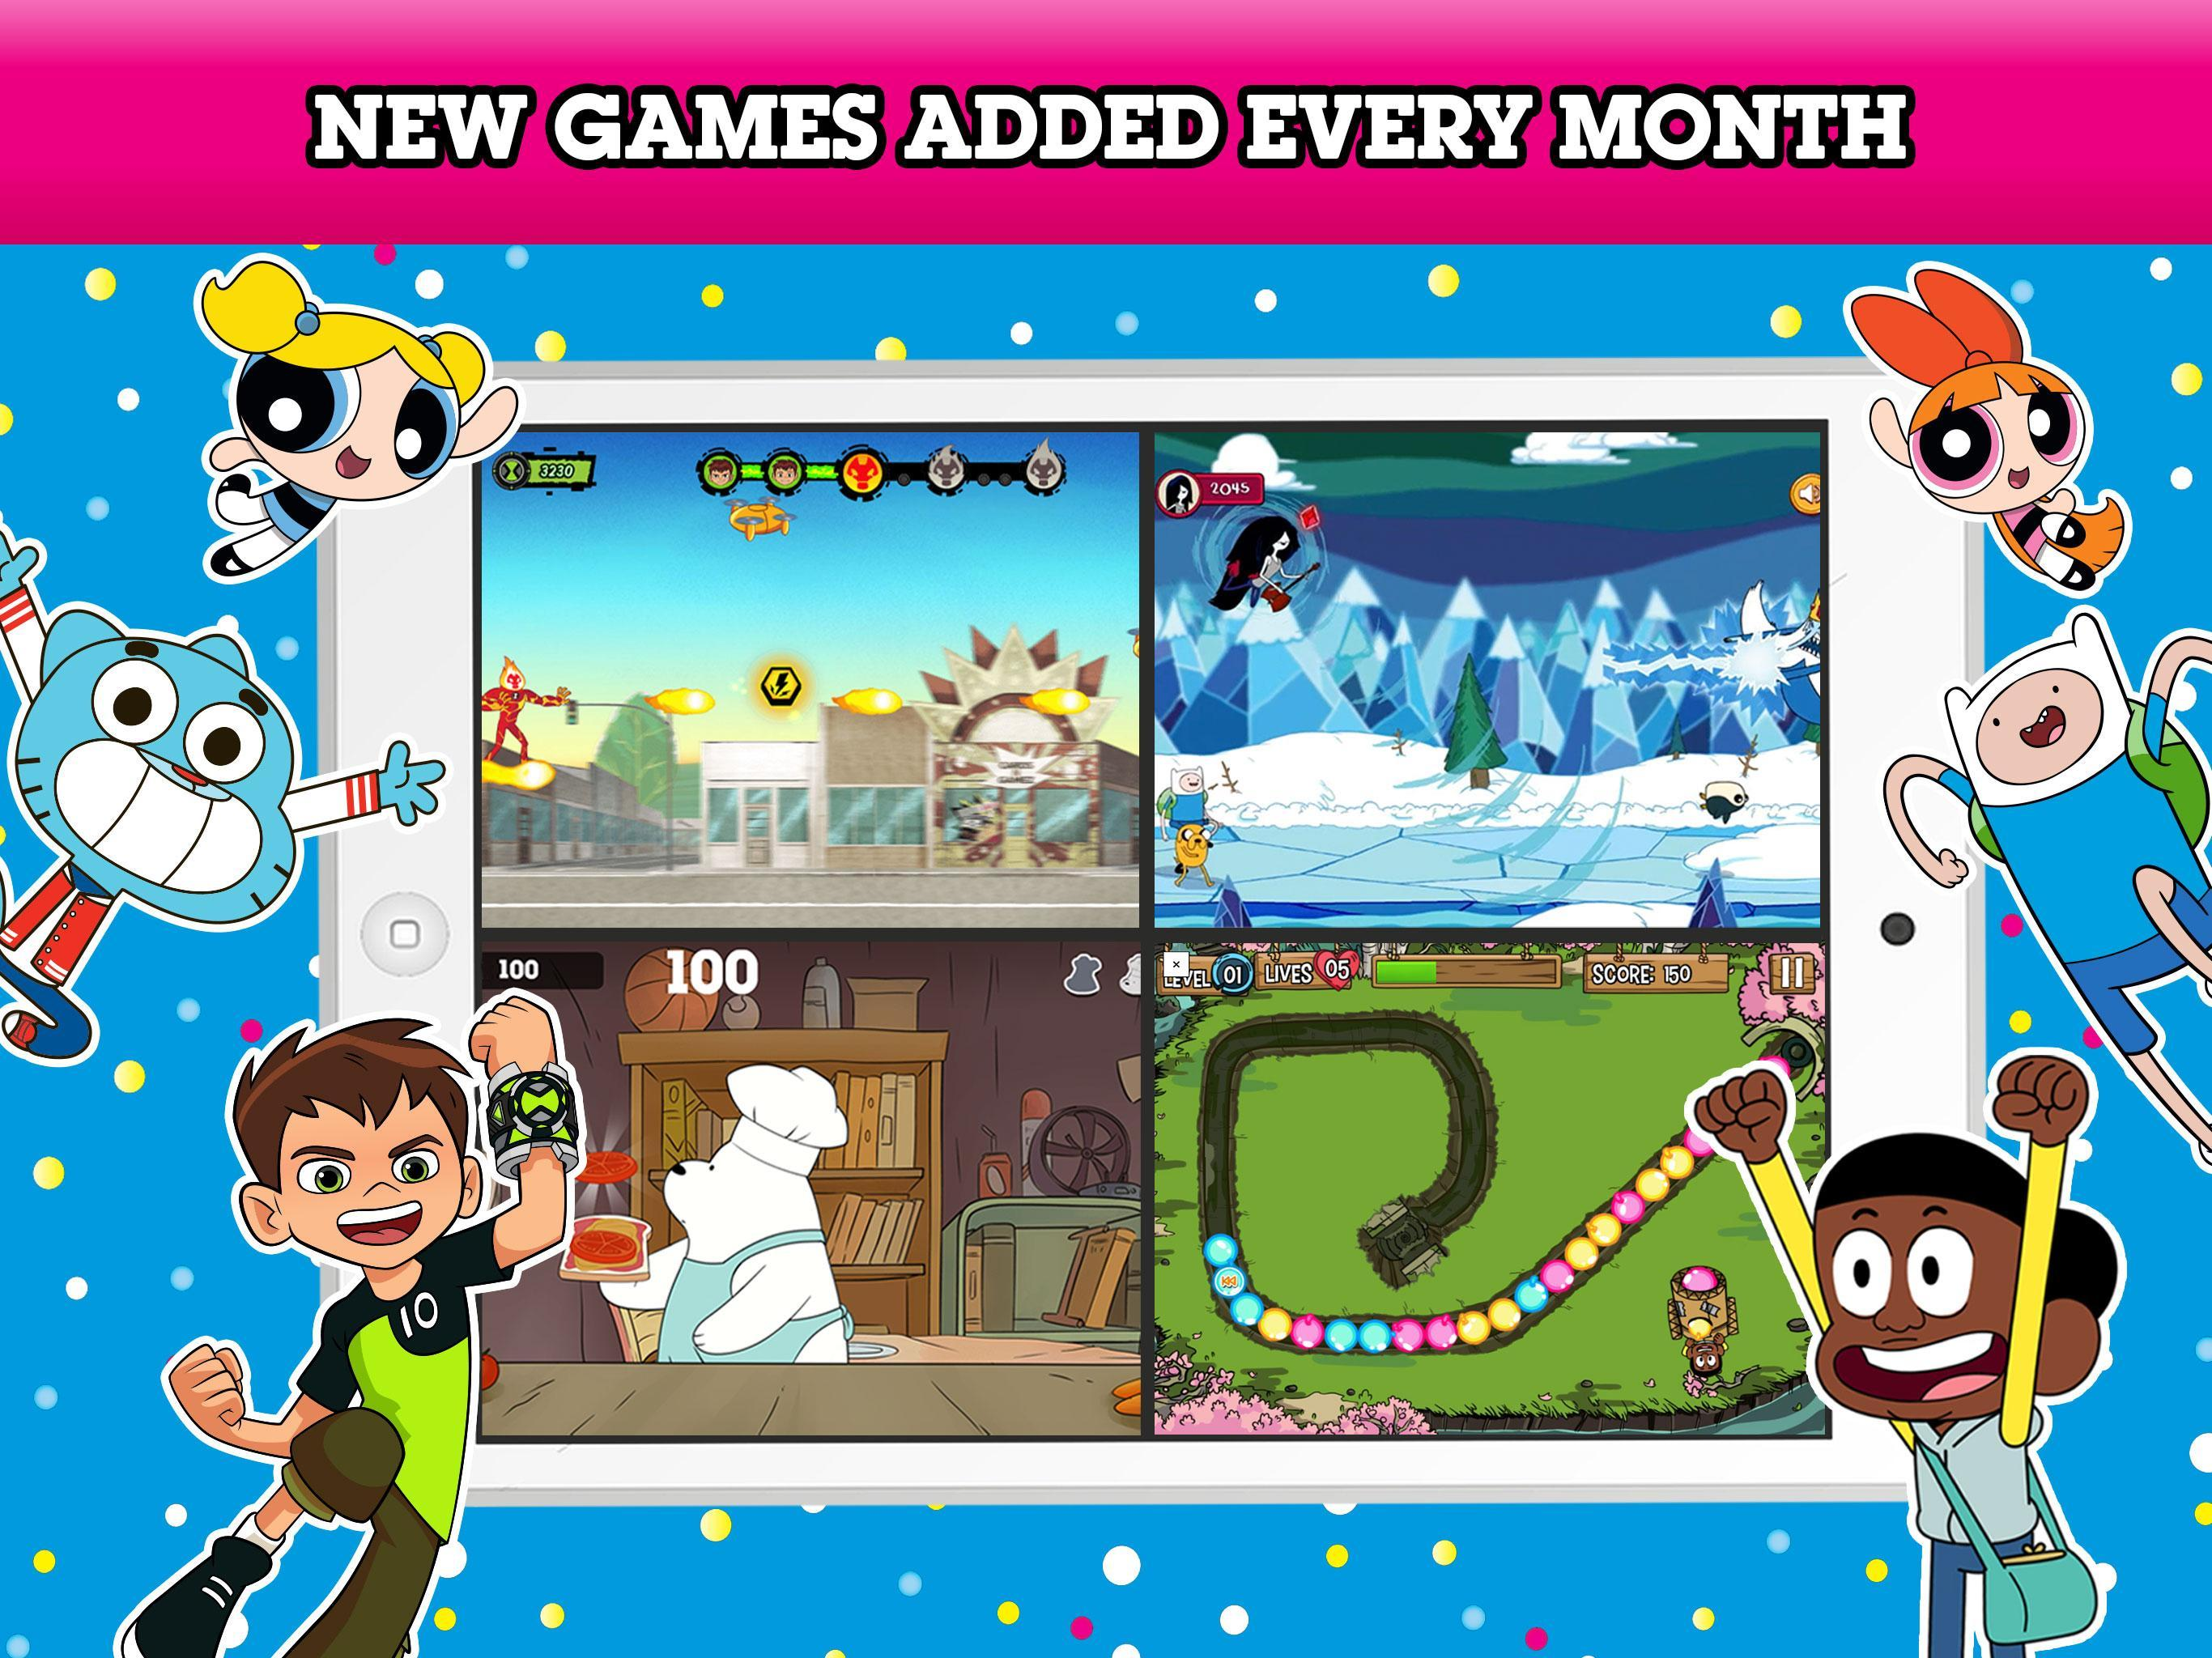 Cartoon Network Gamebox Free Games Every Month For Android Apk Download